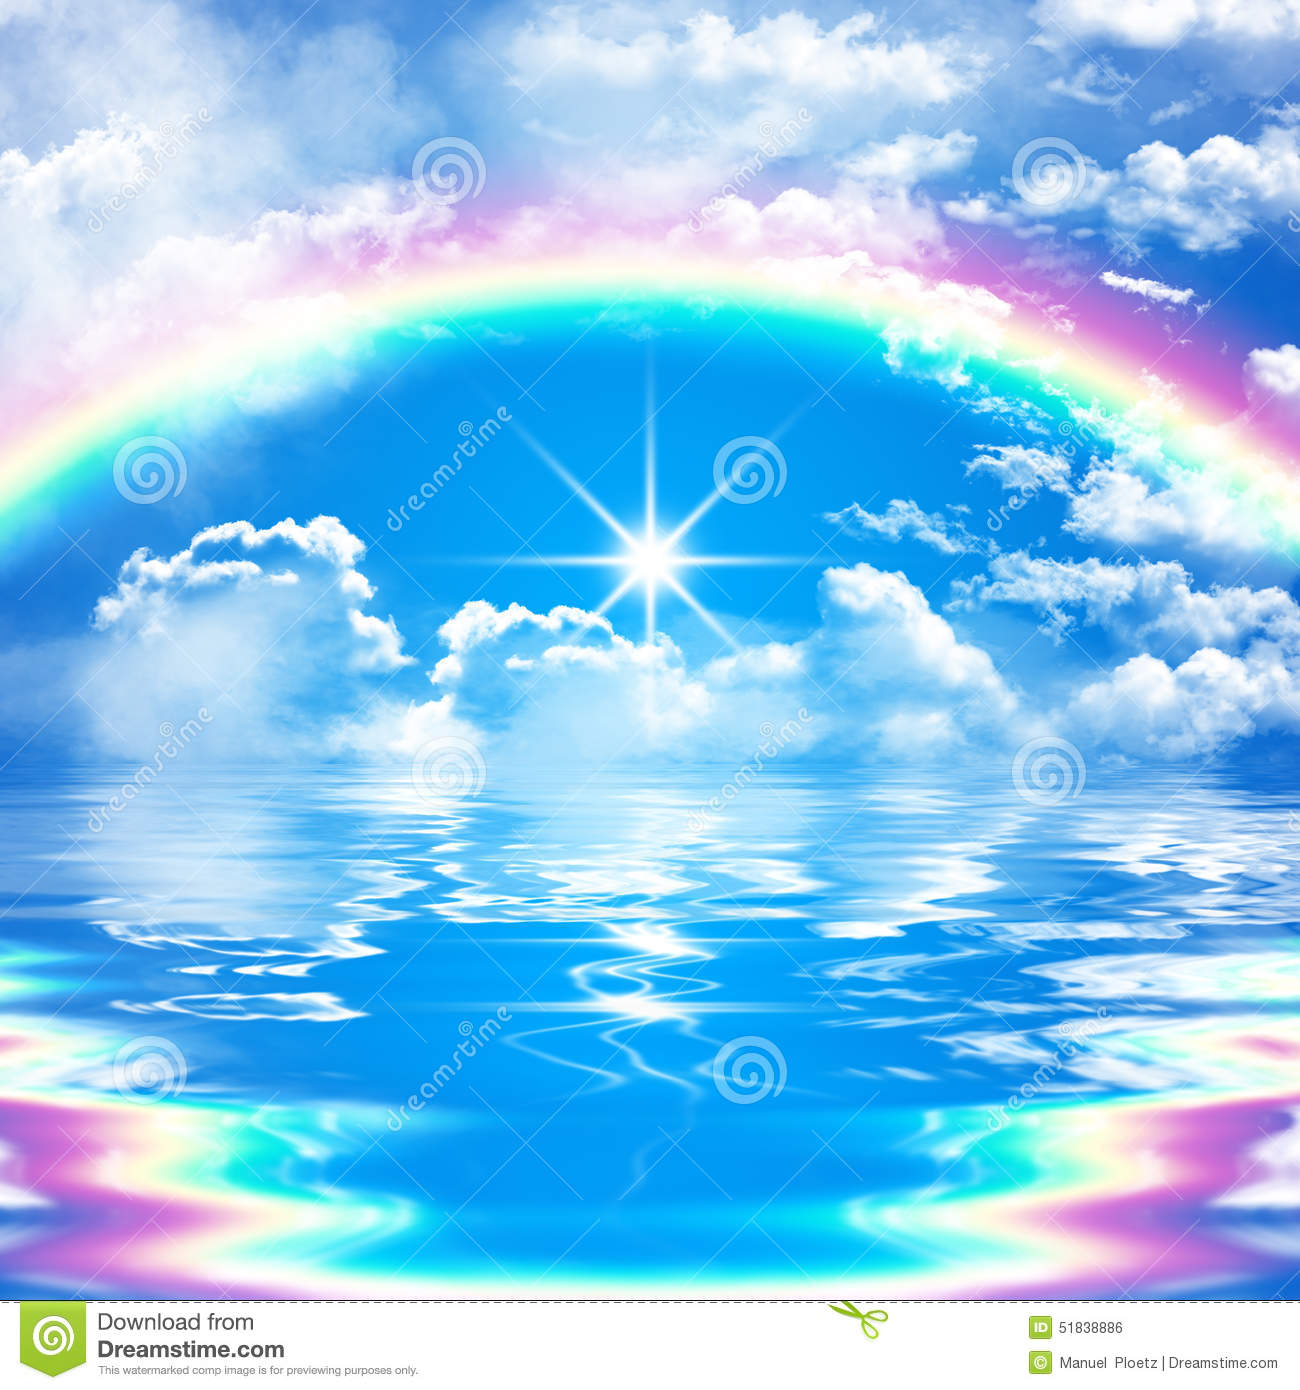 Romantic And Peaceful Seascape Scene With Rainbow On Cloudy Blue Sky Stock Illustration Image